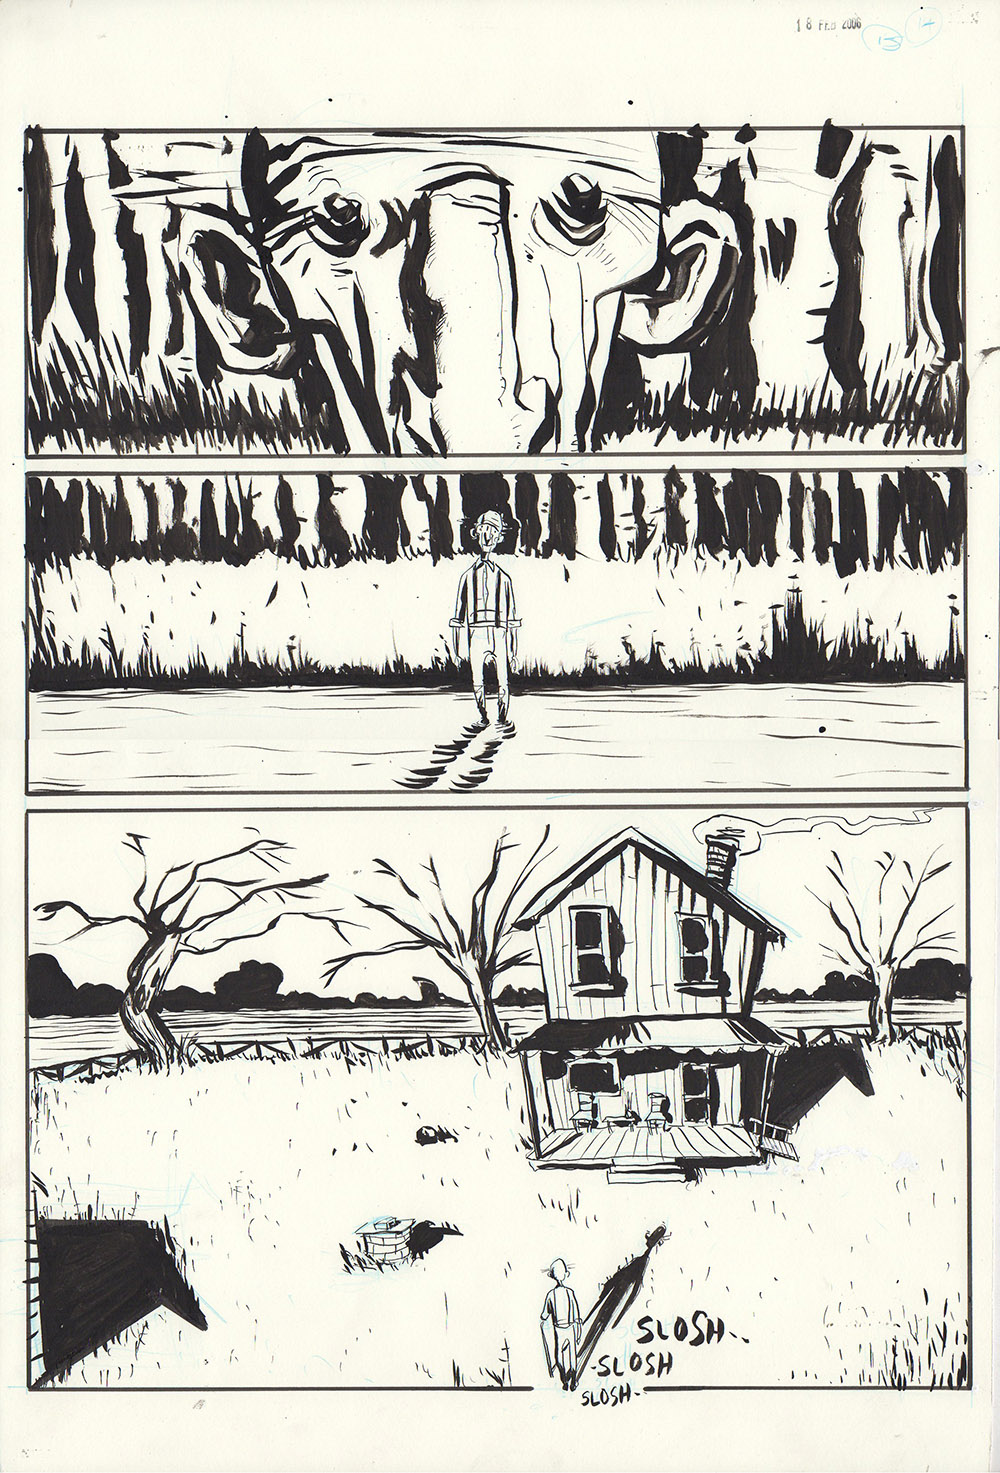 Essex County Book 2: Ghost Stories - page 129